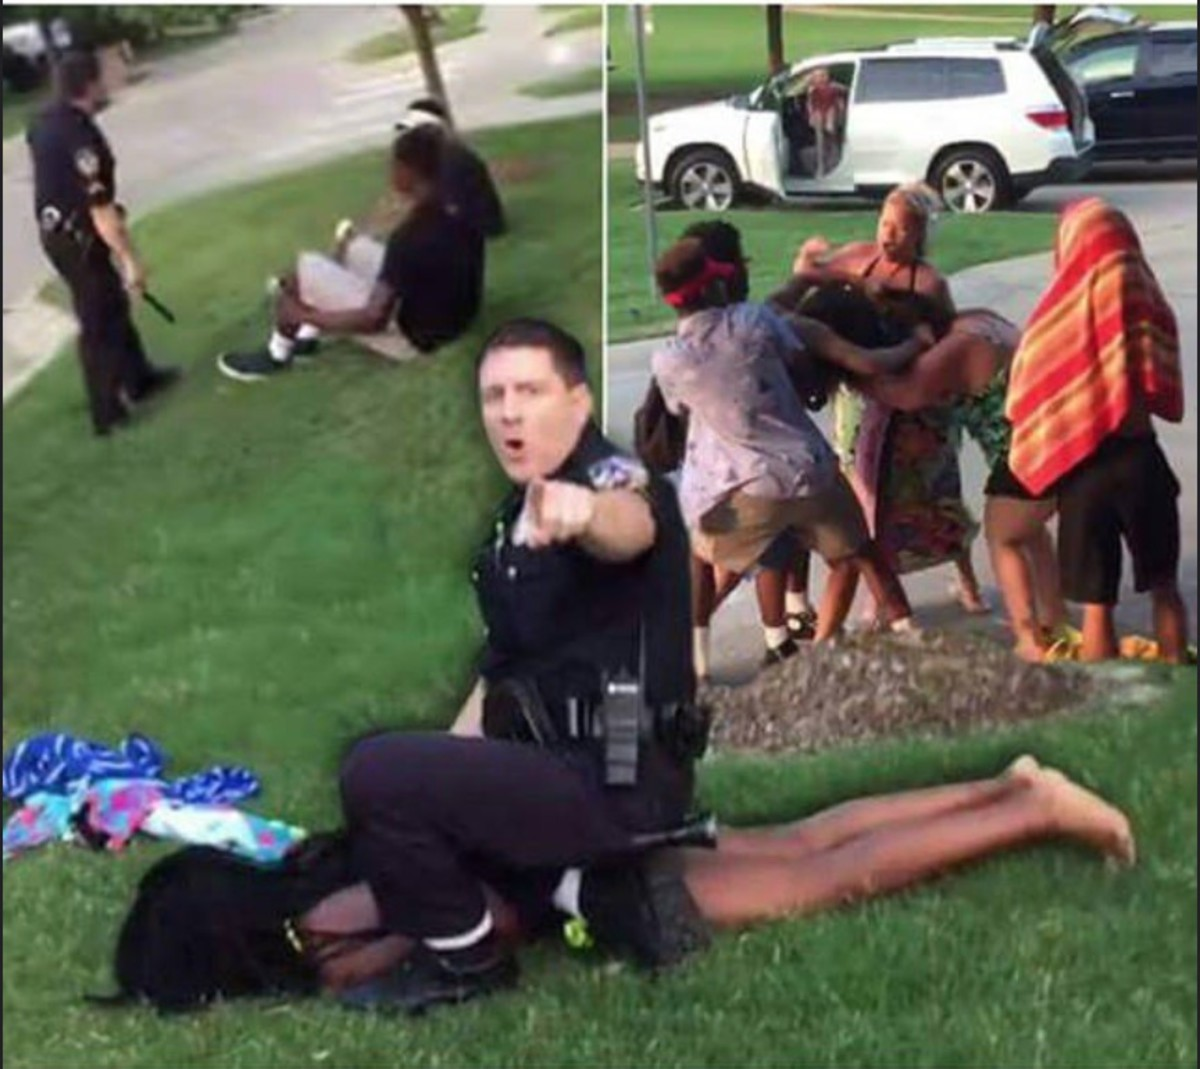 Out of control when called to a pool party in McKinney, Texas in June 2015.